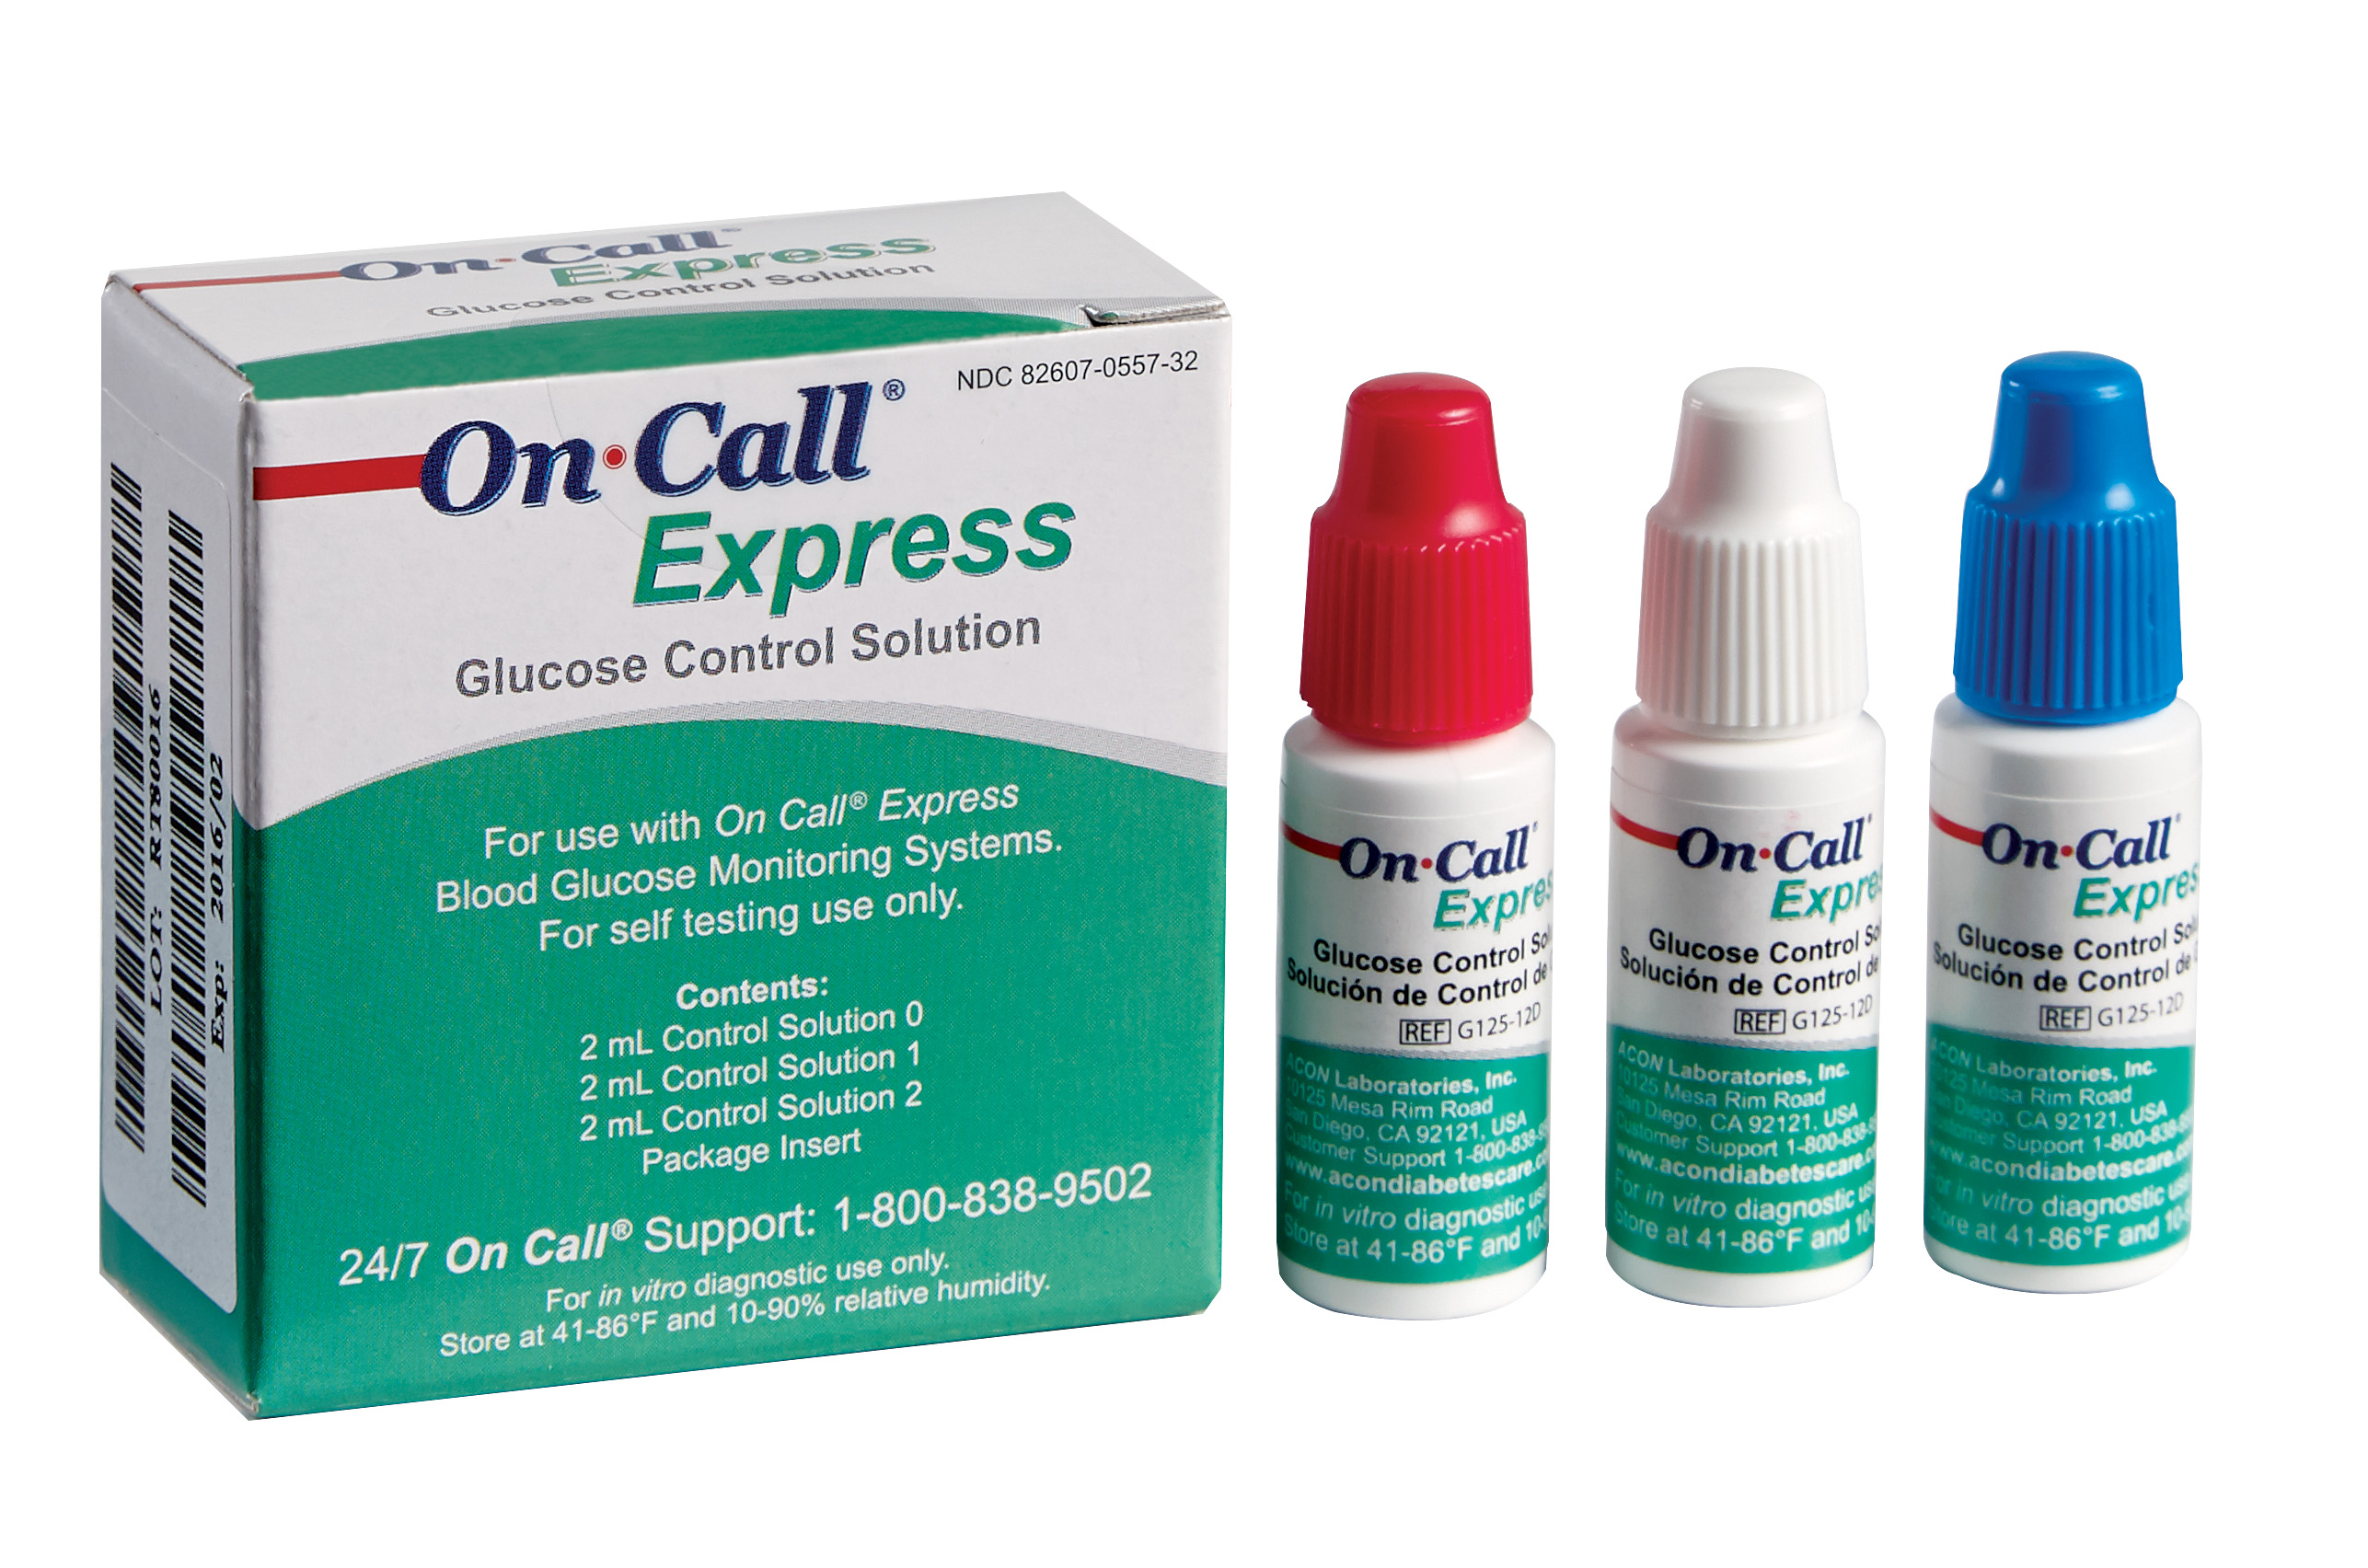 On Call® Express Glucose Control Solution Kit